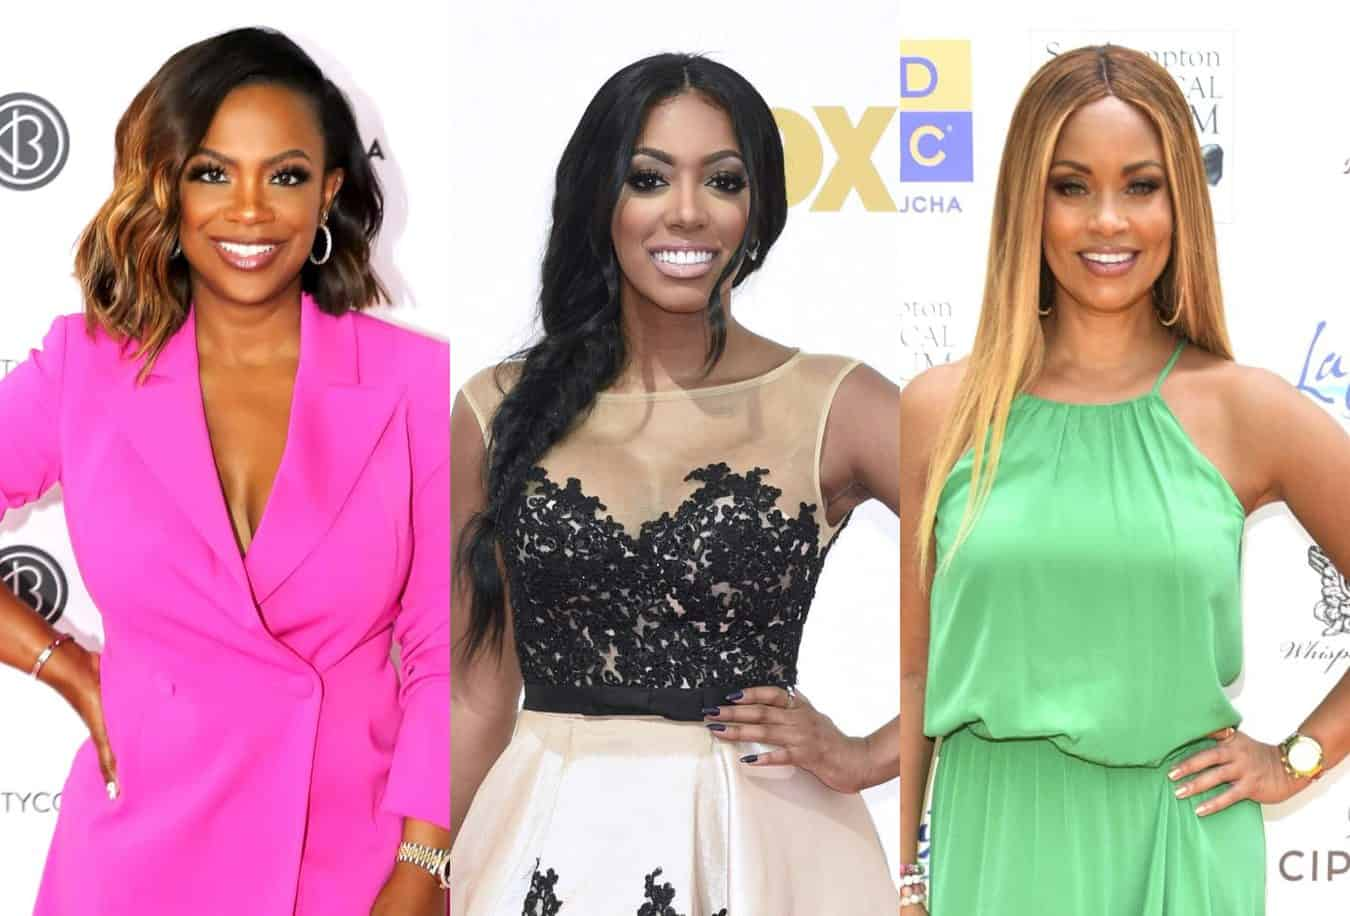 RHOA's Kandi Burruss and Porsha Williams Talk Experiences With Racism, BLM Protests, and How People Can Take Action, Plus RHOP's Gizelle Bryant Speaks Out as Bravo Pledges $100 Million for Social Injustice